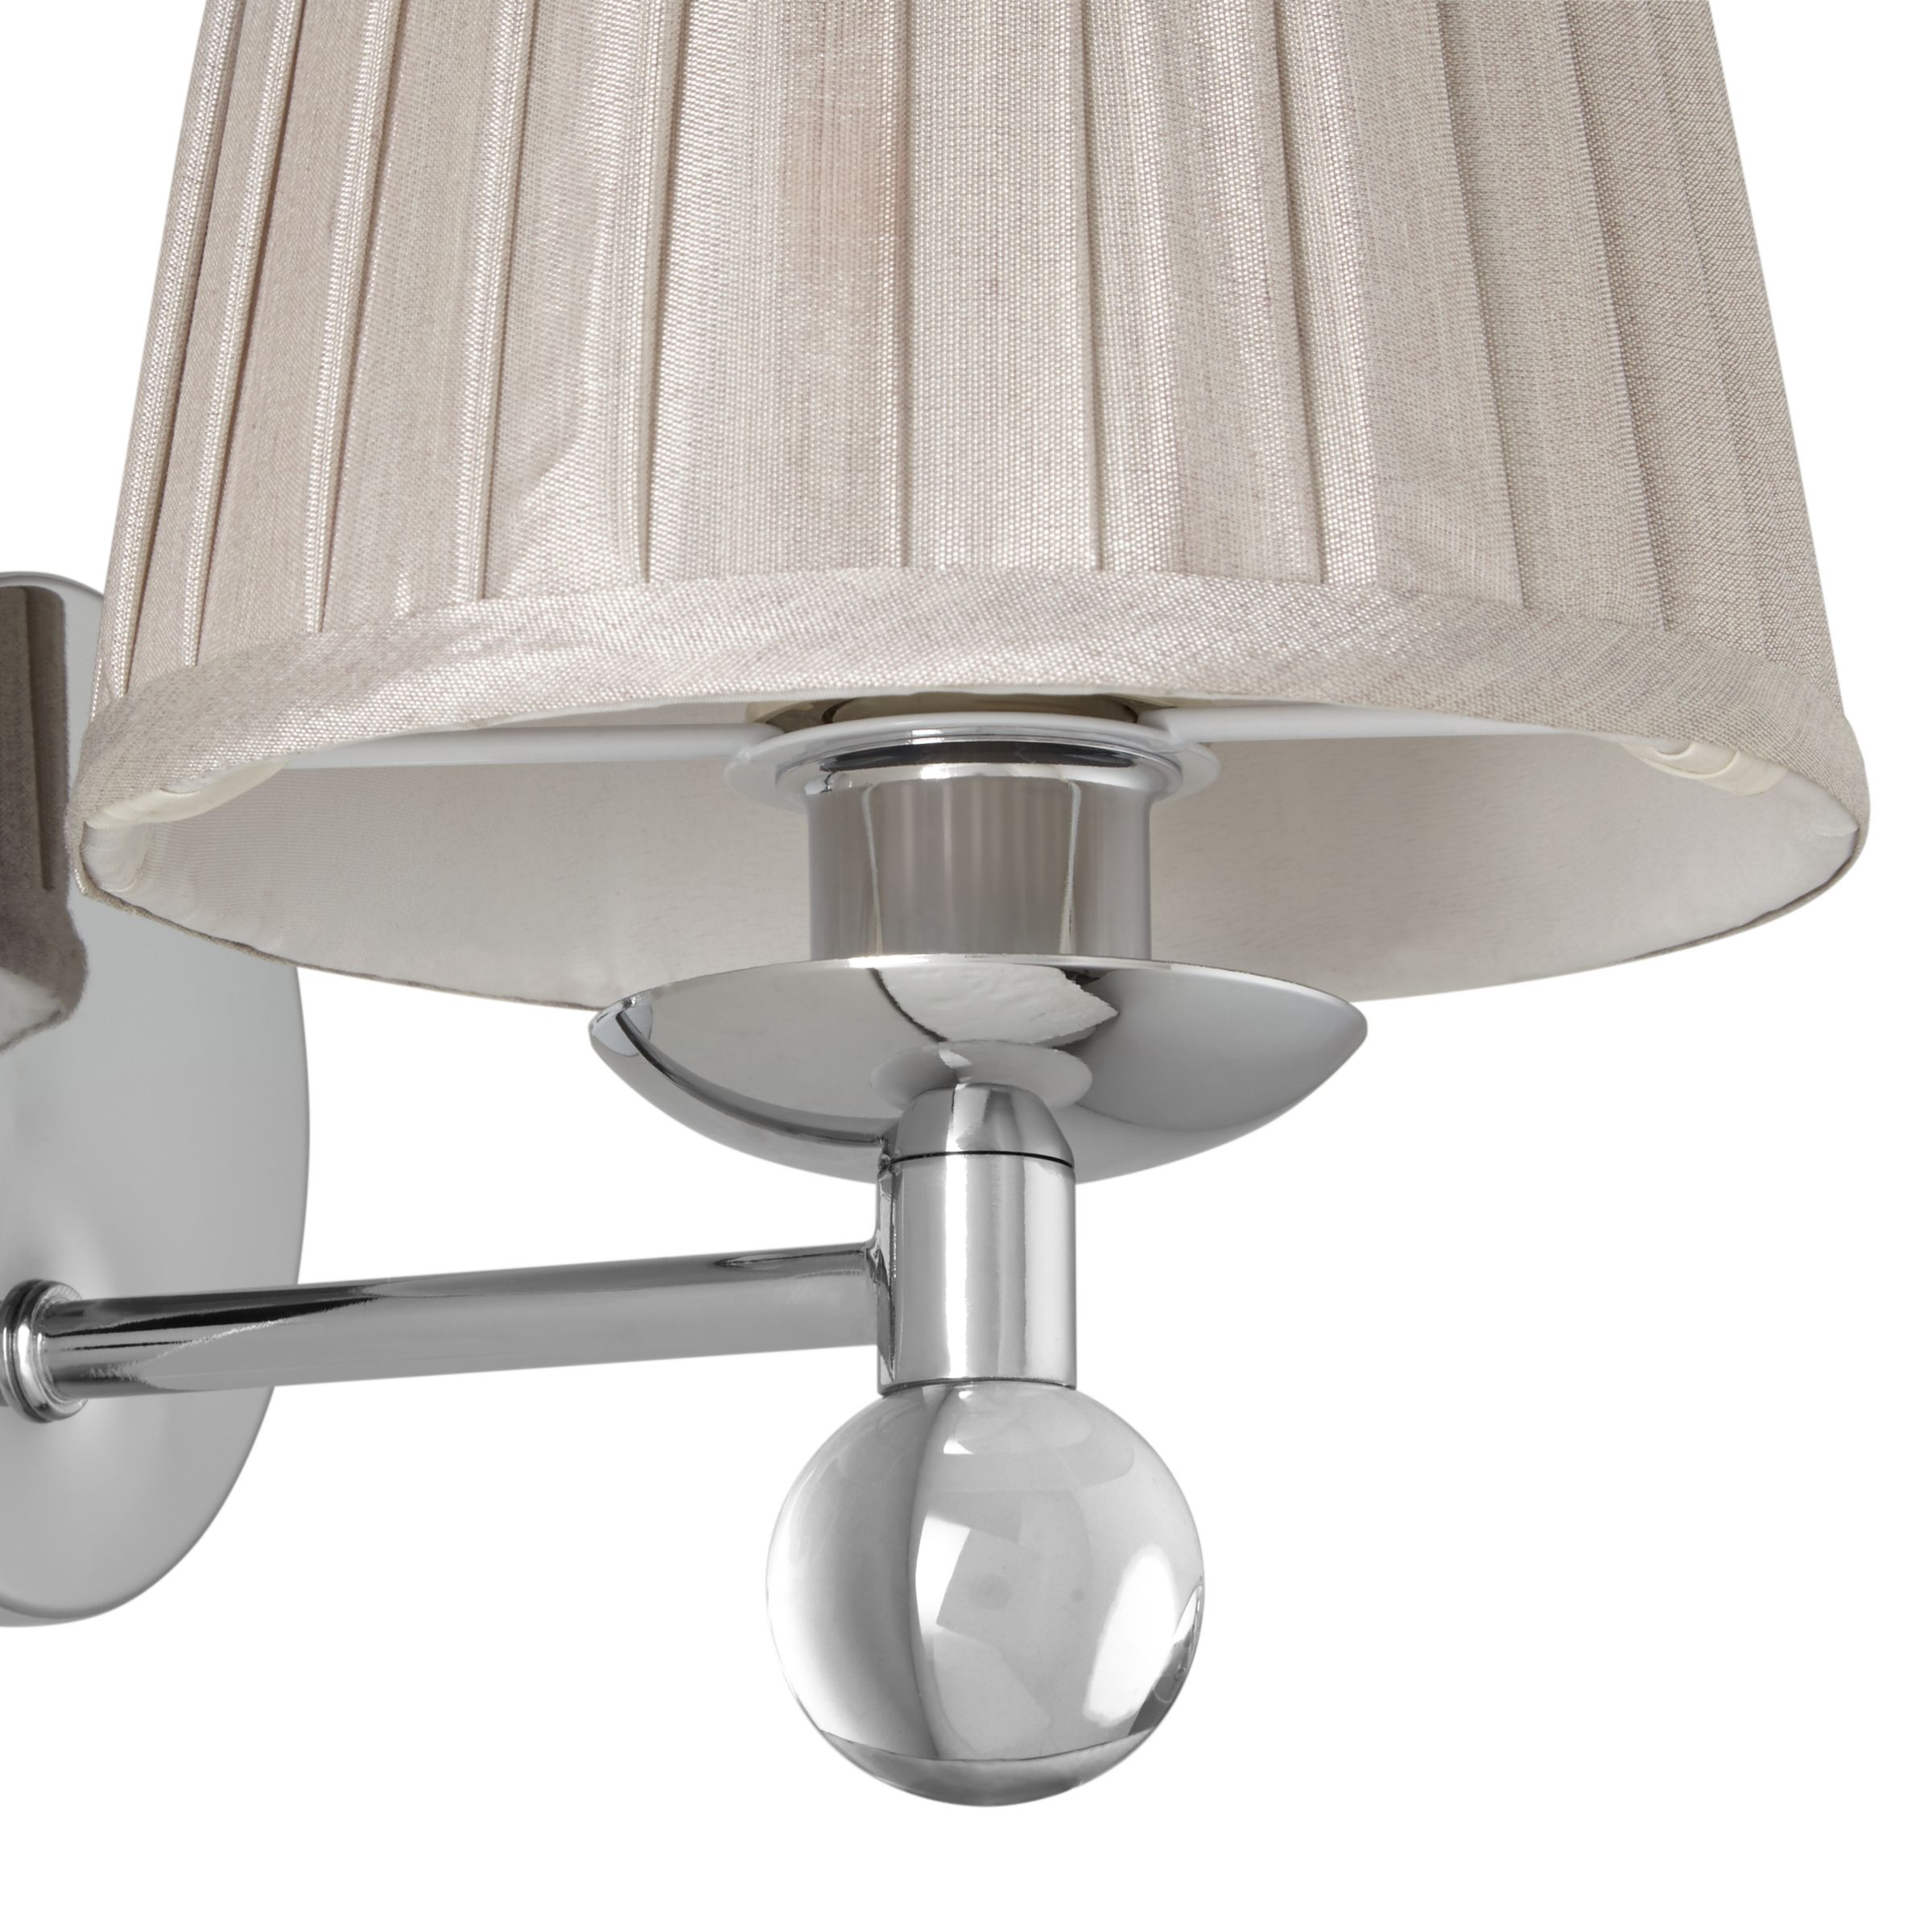 John Lewis Wall Lamp Shades : Buy John Lewis Lavinia Wall Light with Shade John Lewis